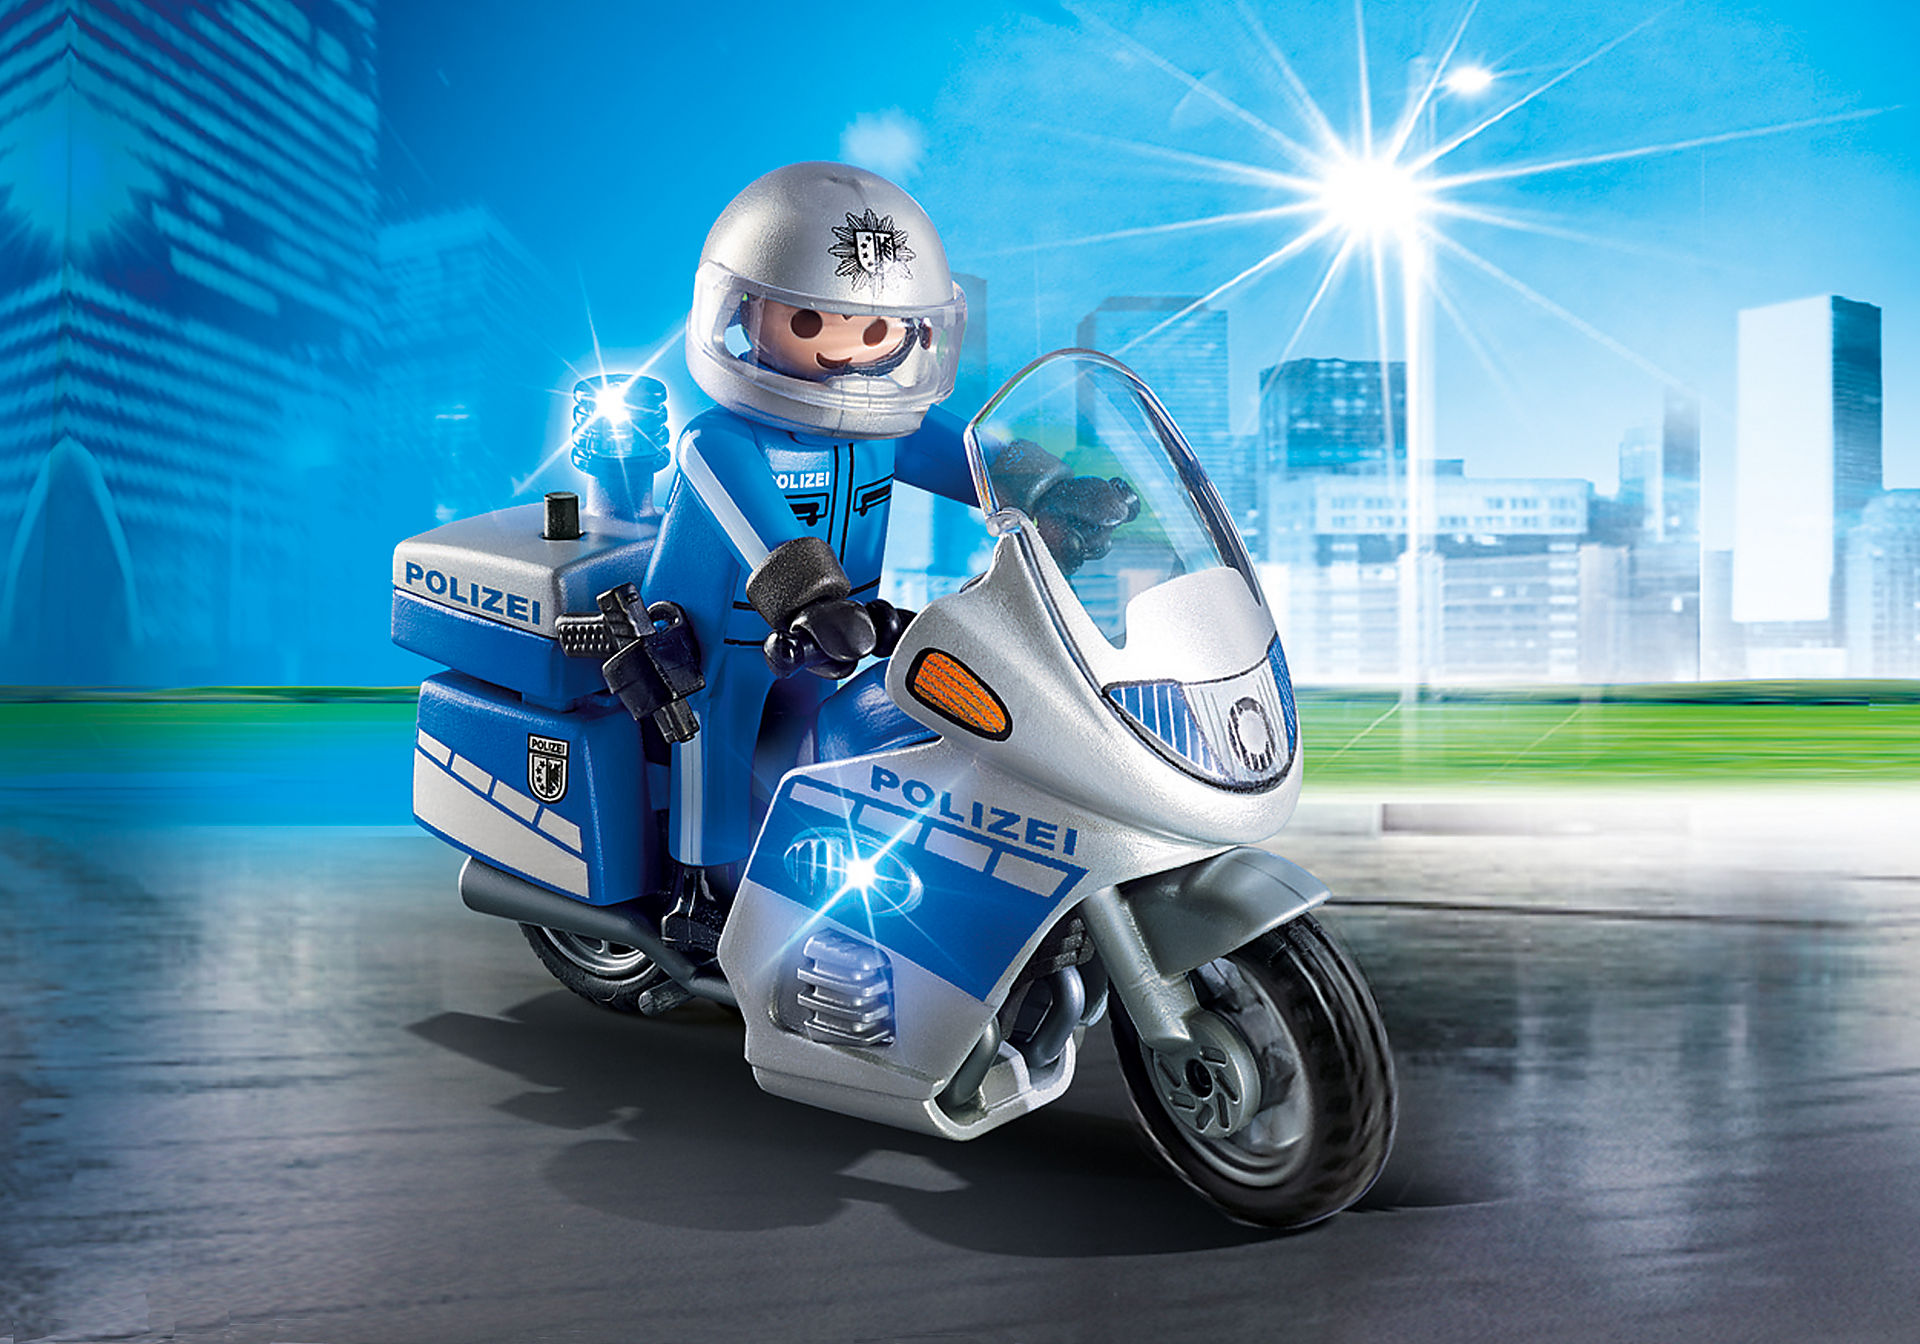 http://media.playmobil.com/i/playmobil/6876_product_detail/Motorradstreife mit LED-Blinklicht